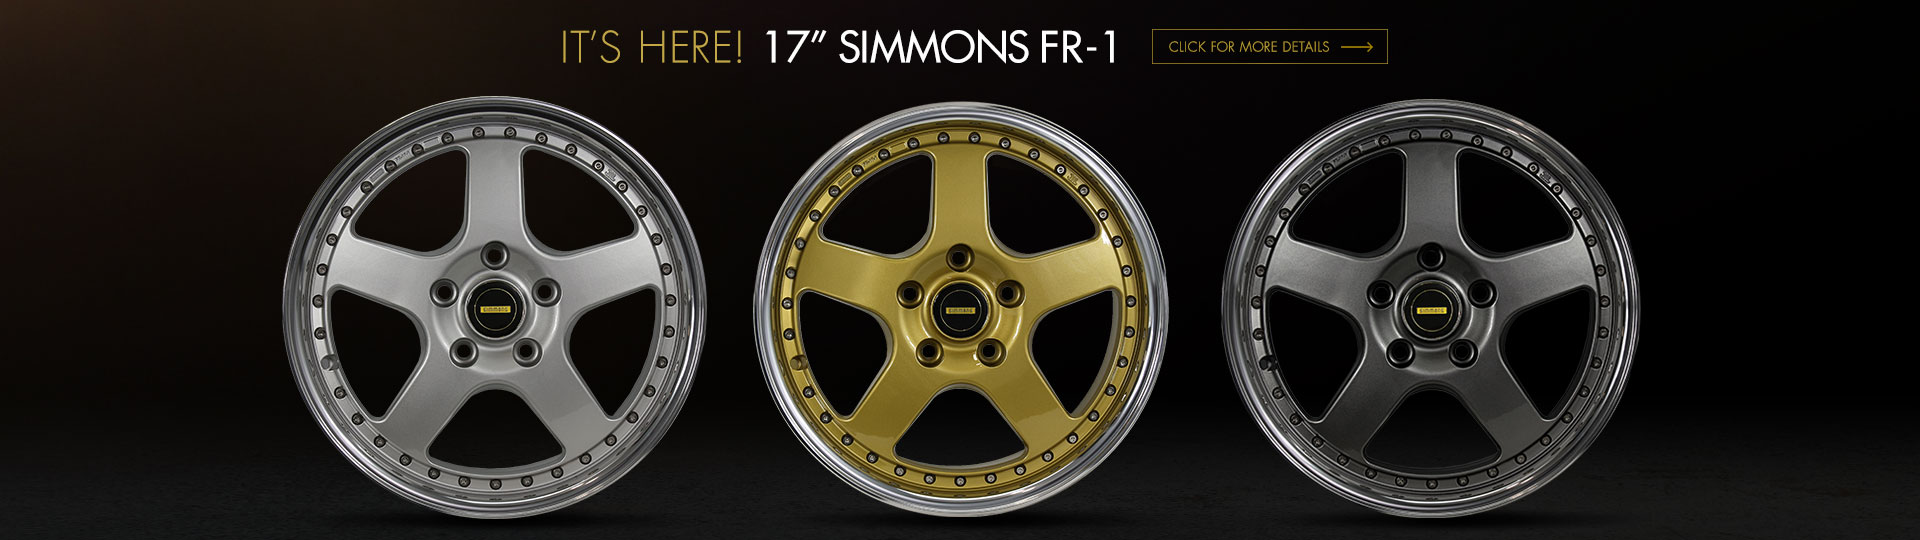 Simmons Wheels New Zealand - FR1 series available now